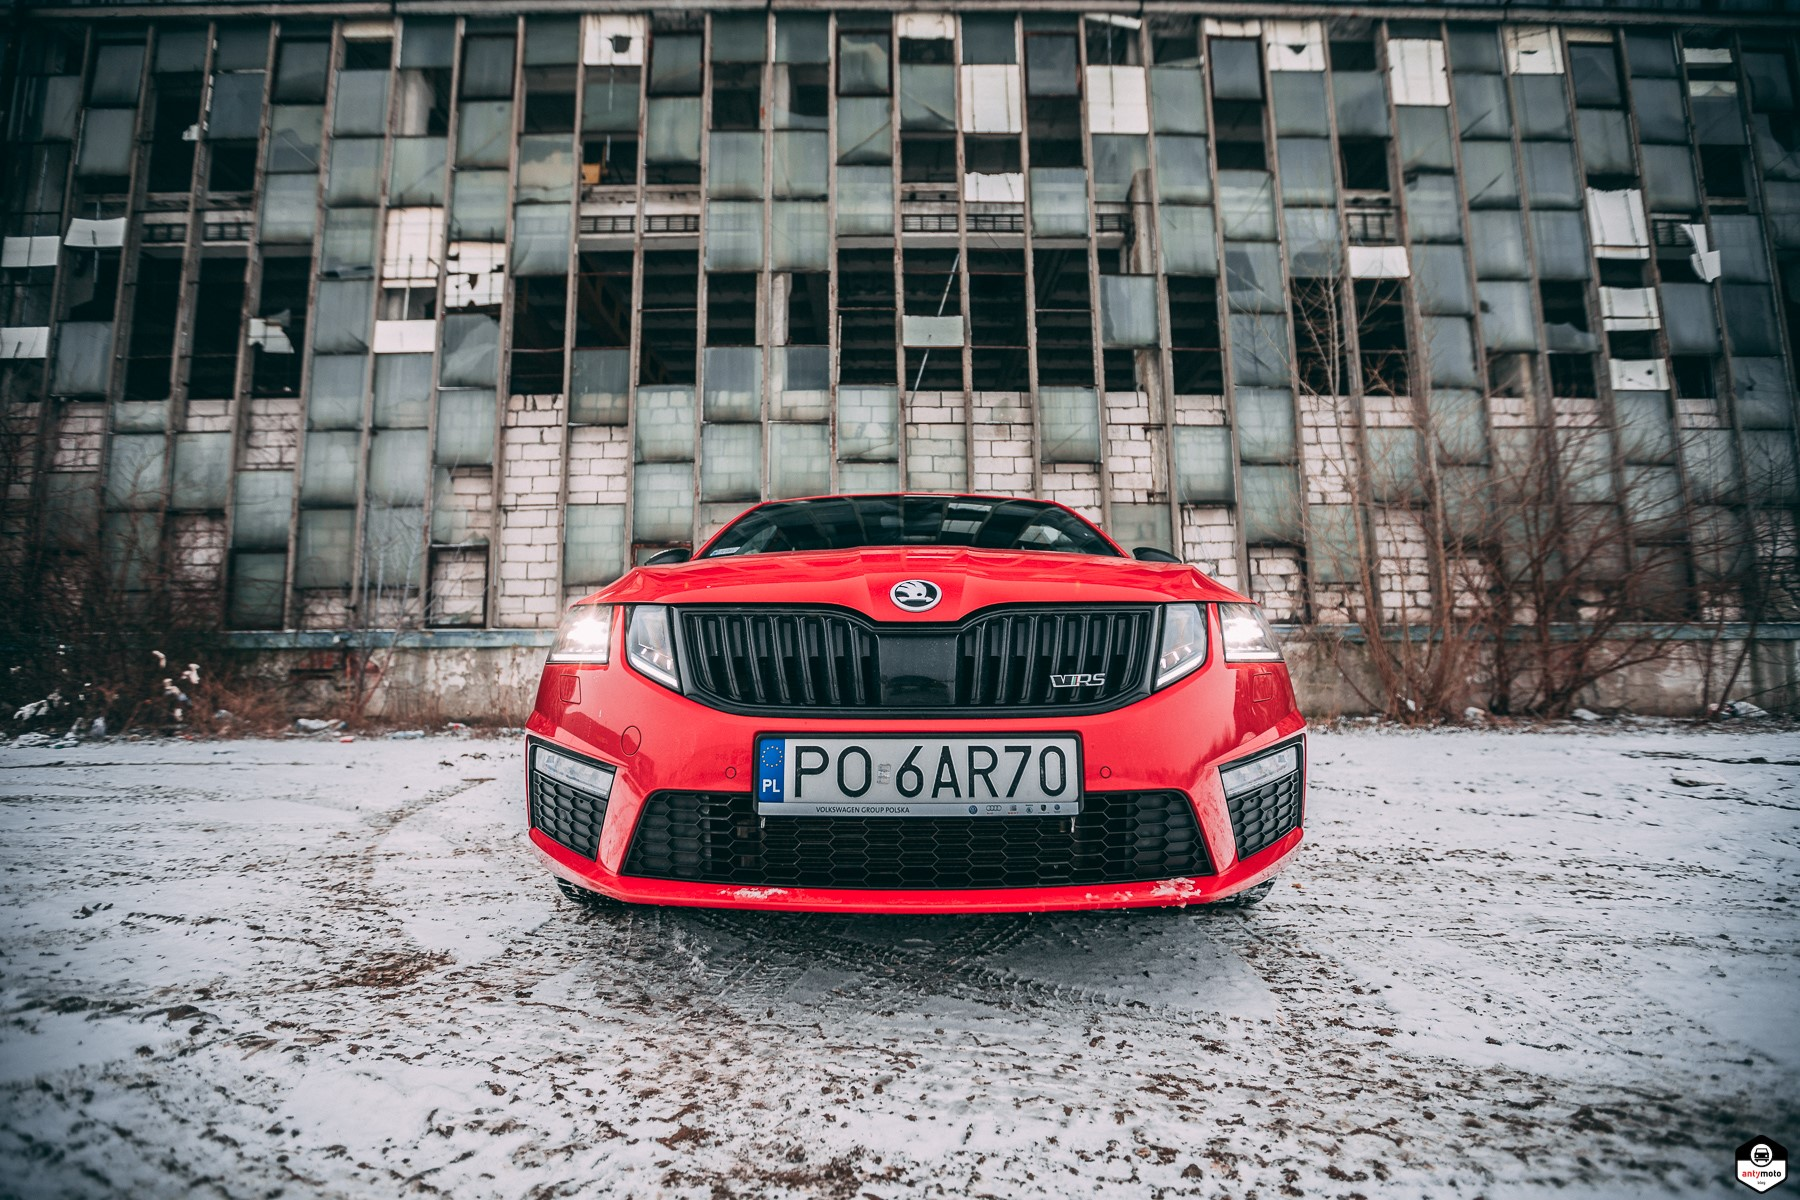 TEST: Skoda Octavia RS 245